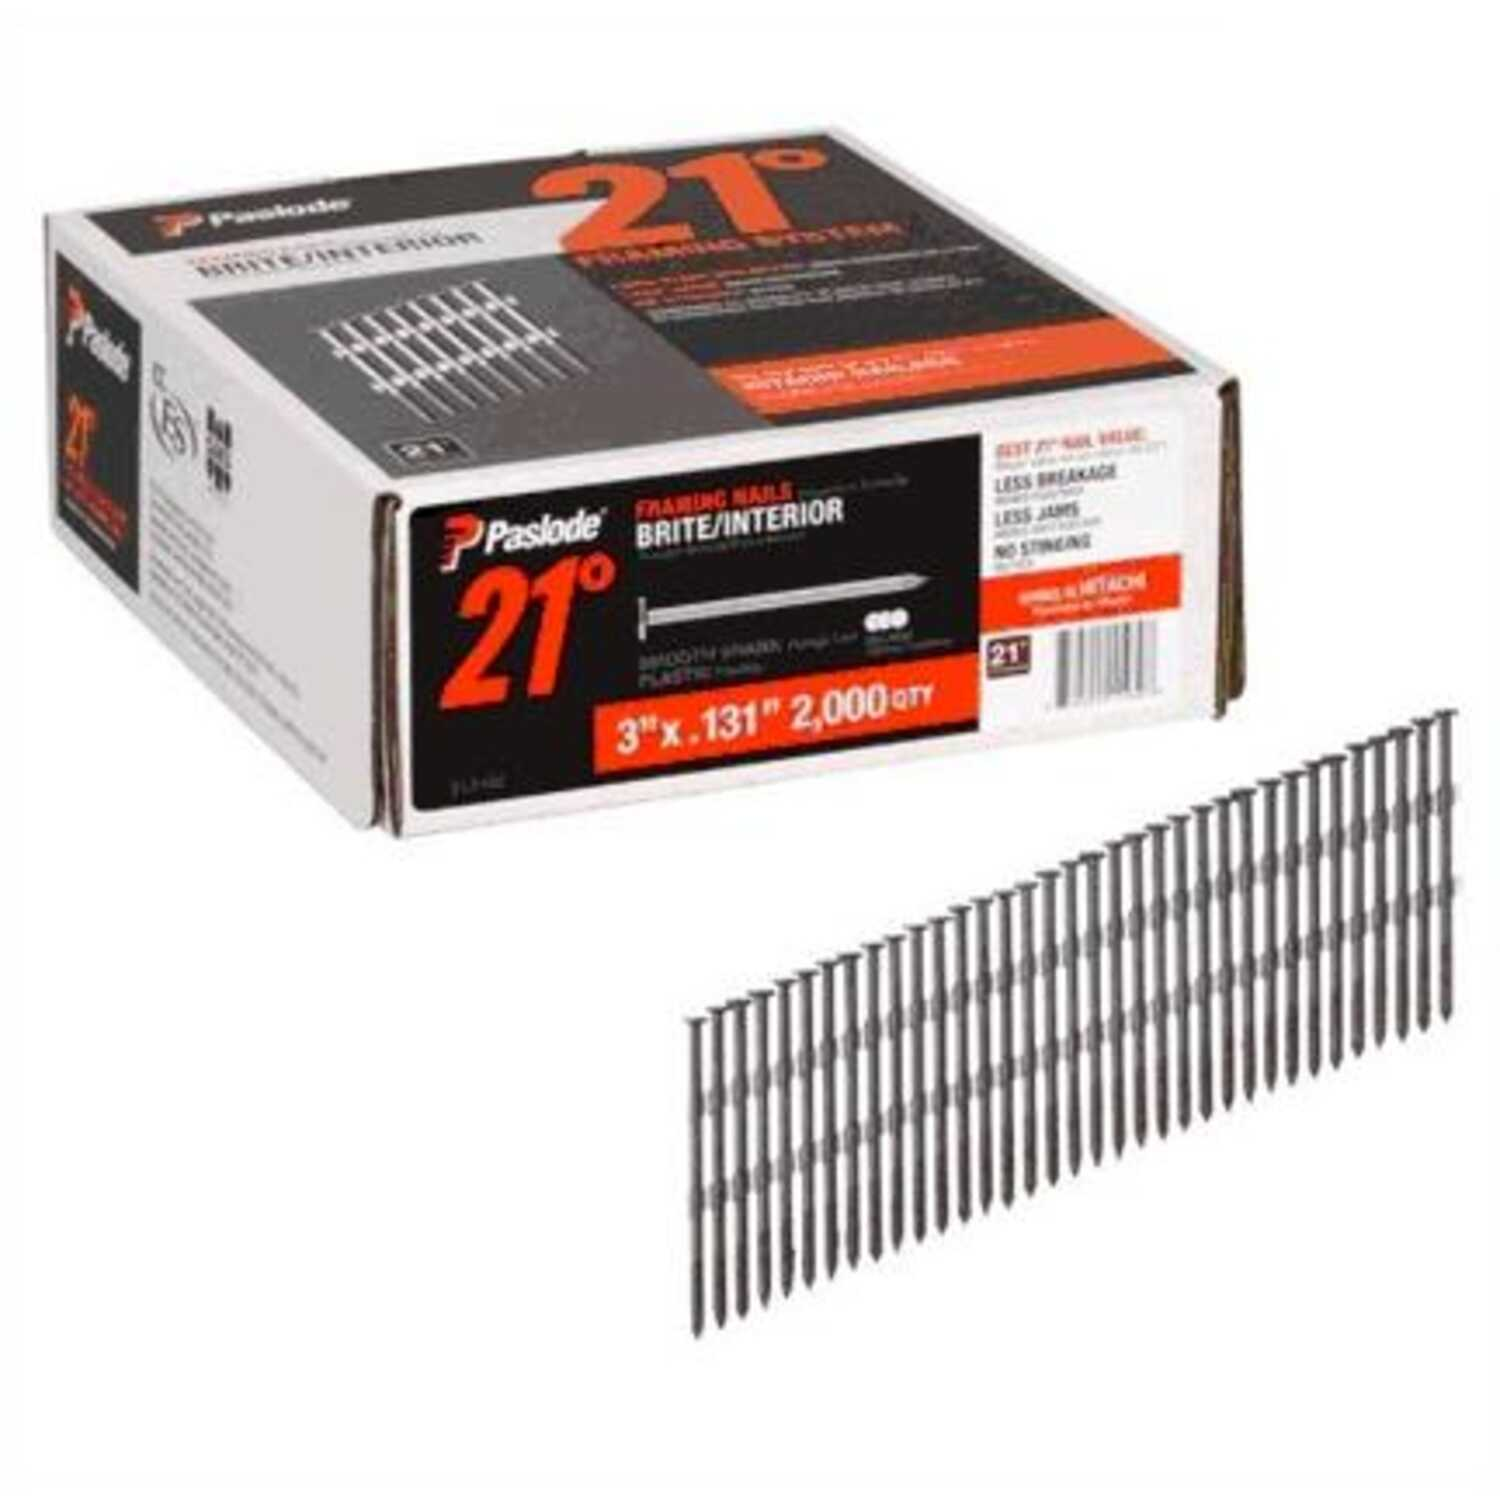 Paslode  16 Ga. Smooth Shank  Straight Strip  3 in. L x 0.131  Dia. 2,000 pk Nails